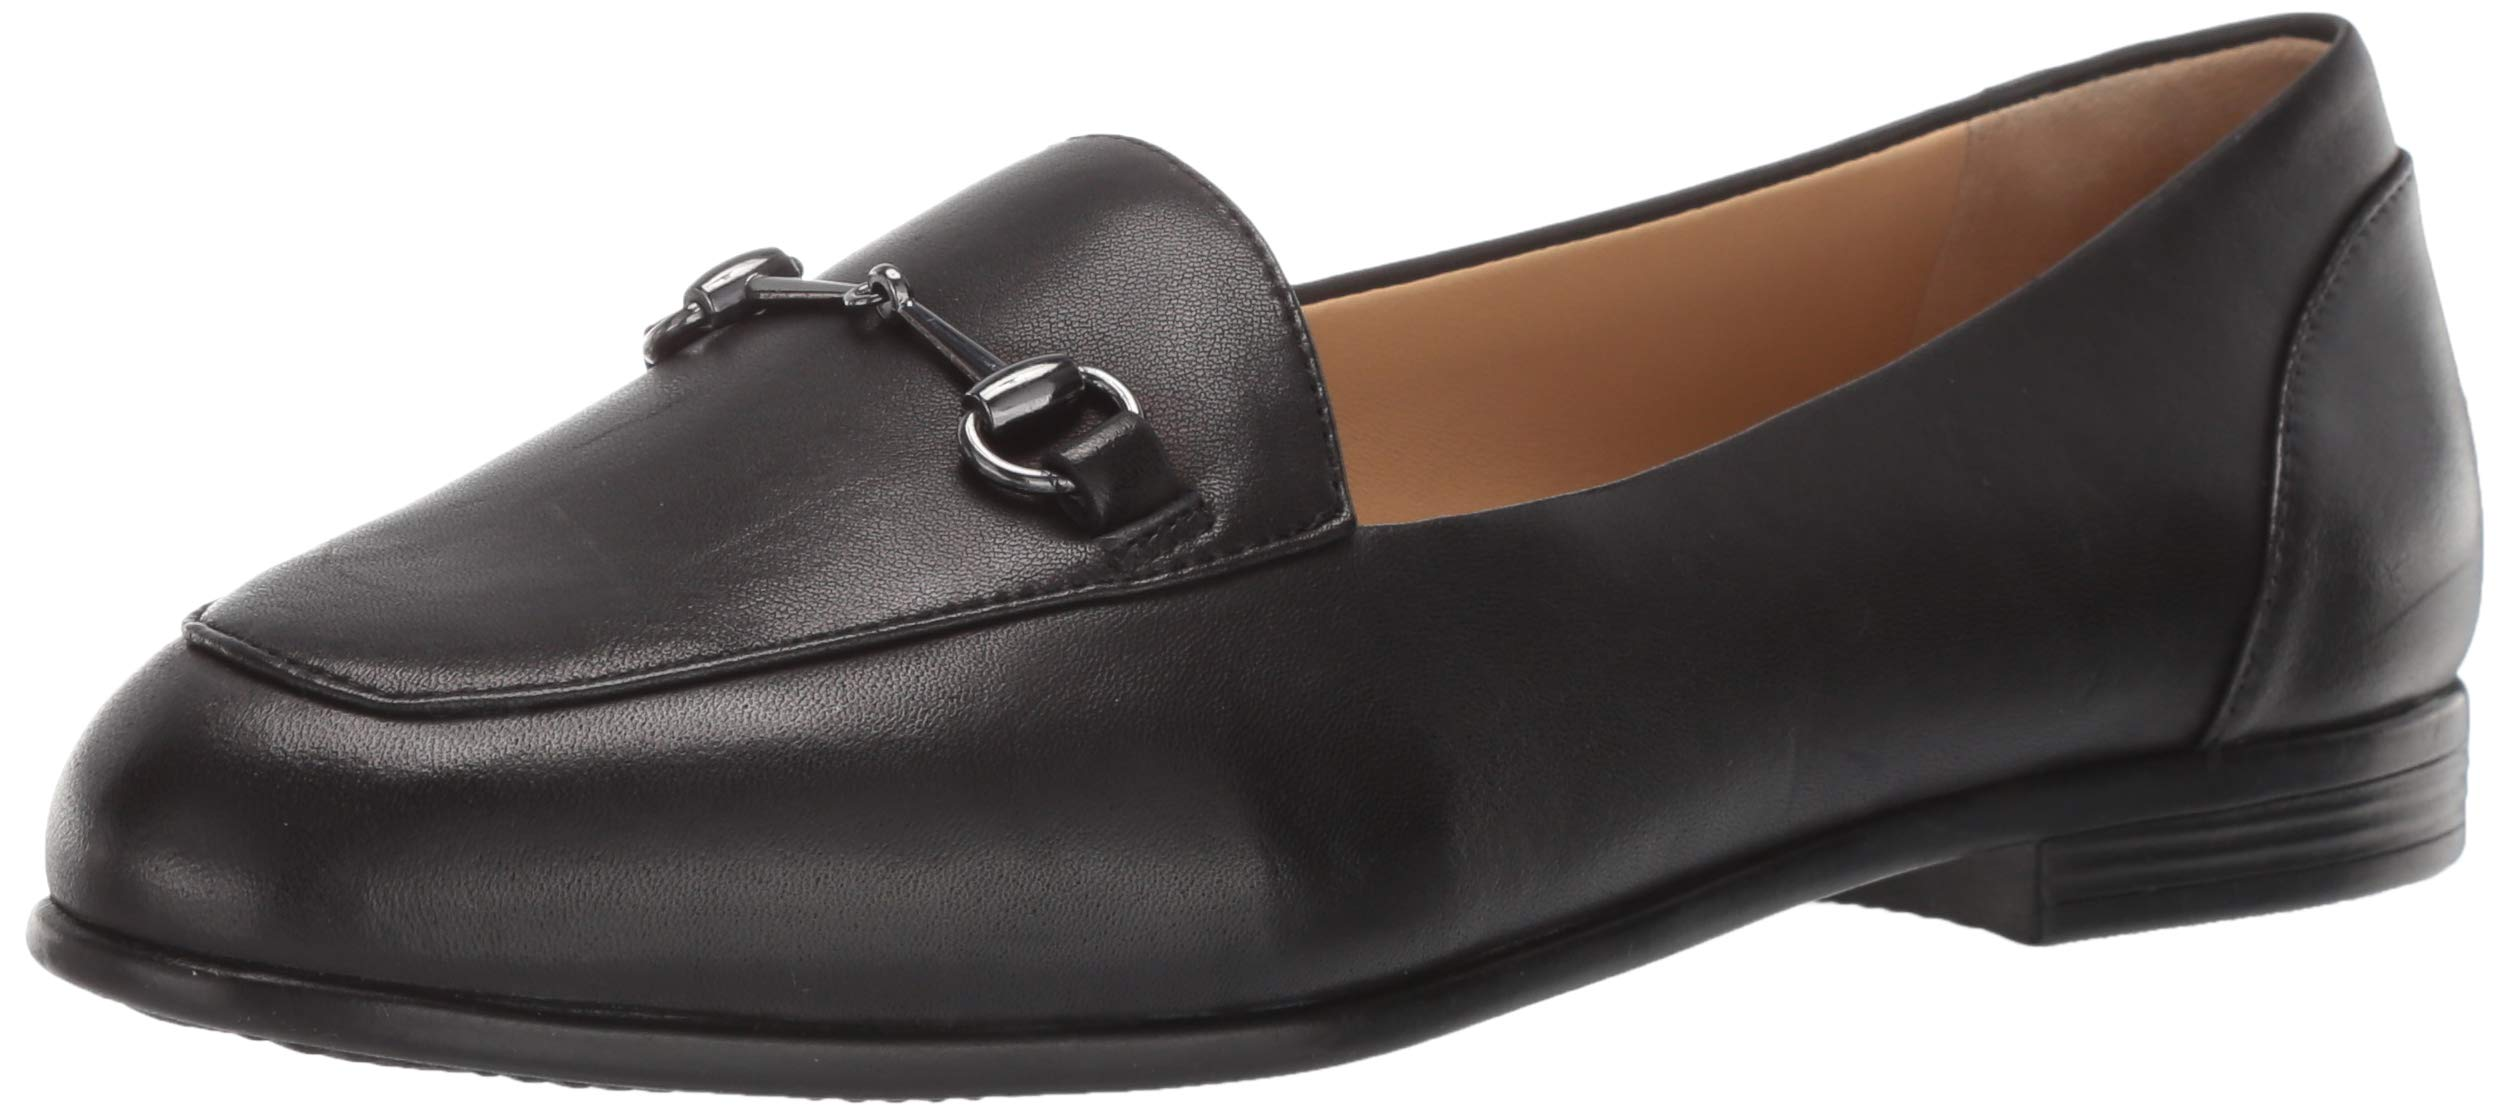 Trotters Women's Anice Penny Loafer, Black, 12.0 W US by Trotters